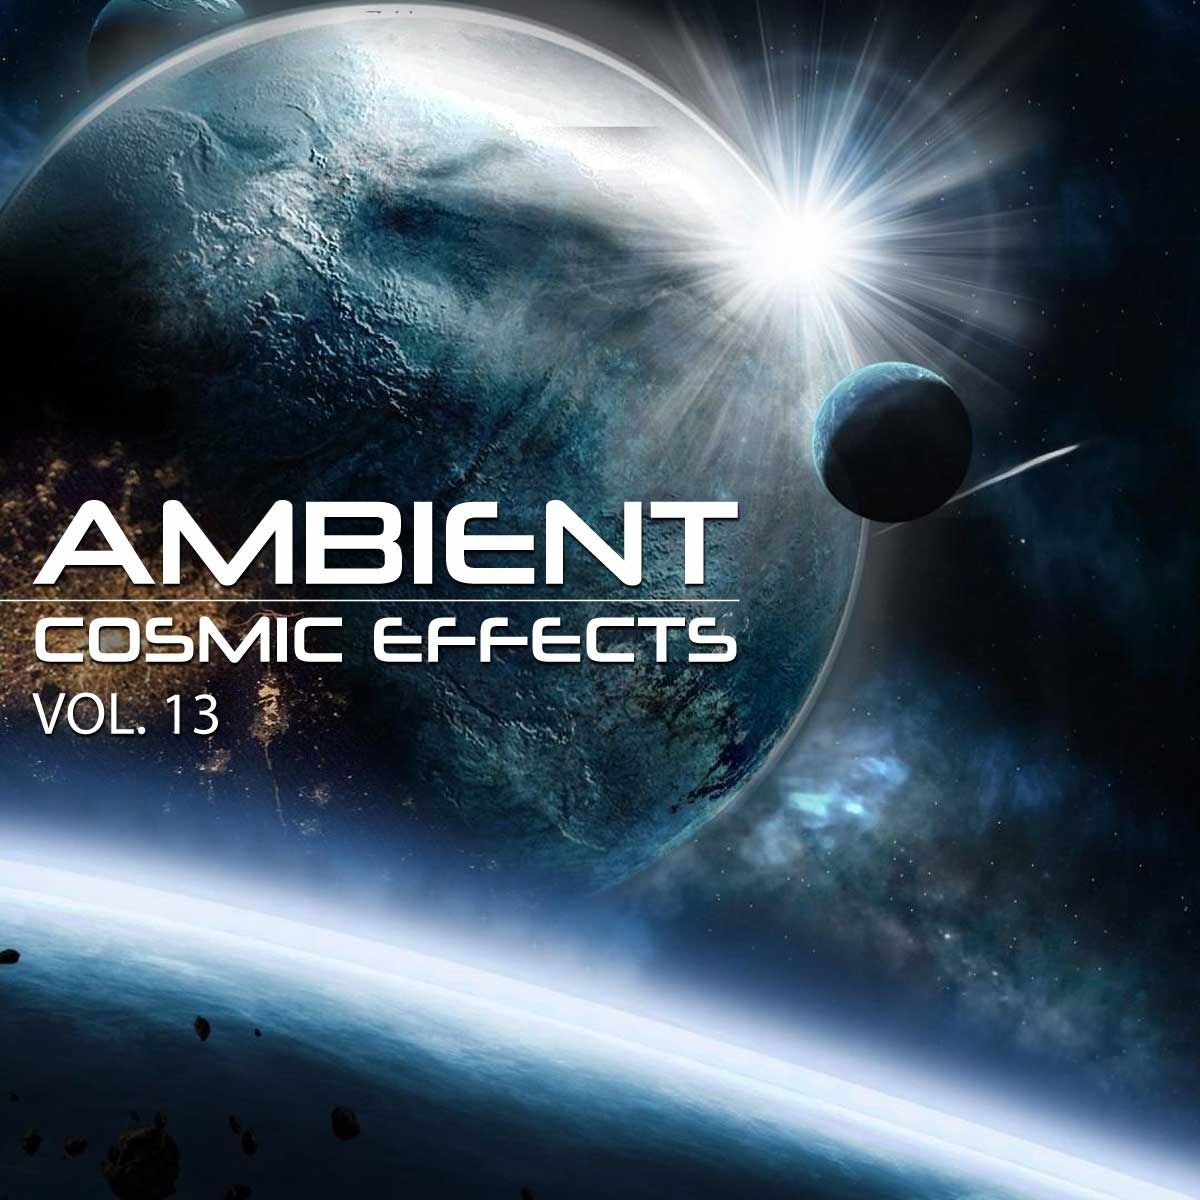 Ambient Cosmic Effects Vol 13